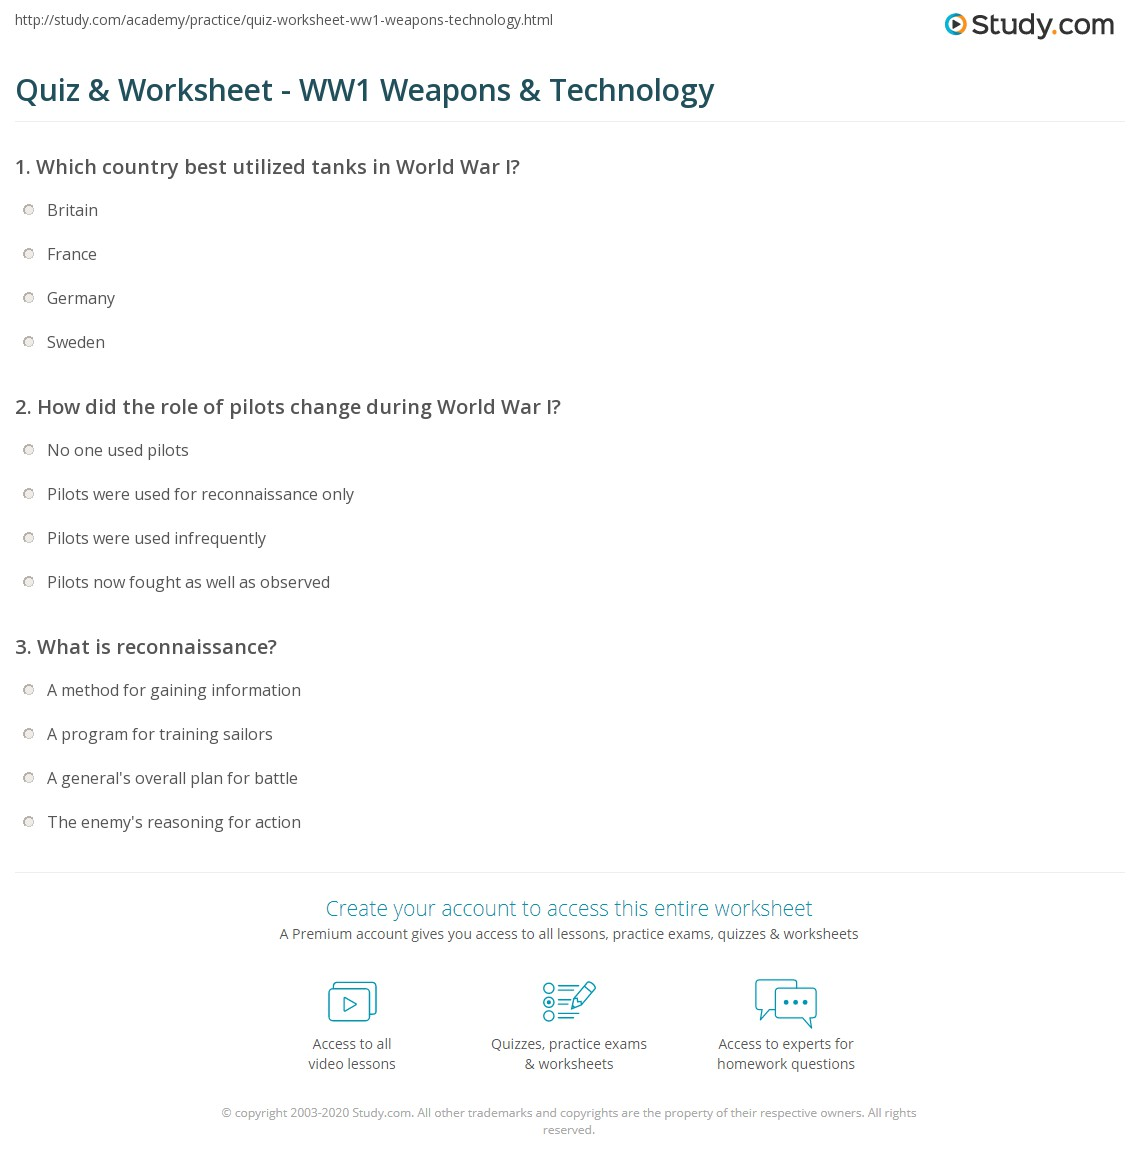 Quiz & Worksheet - WW1 Weapons & Technology | Study.com